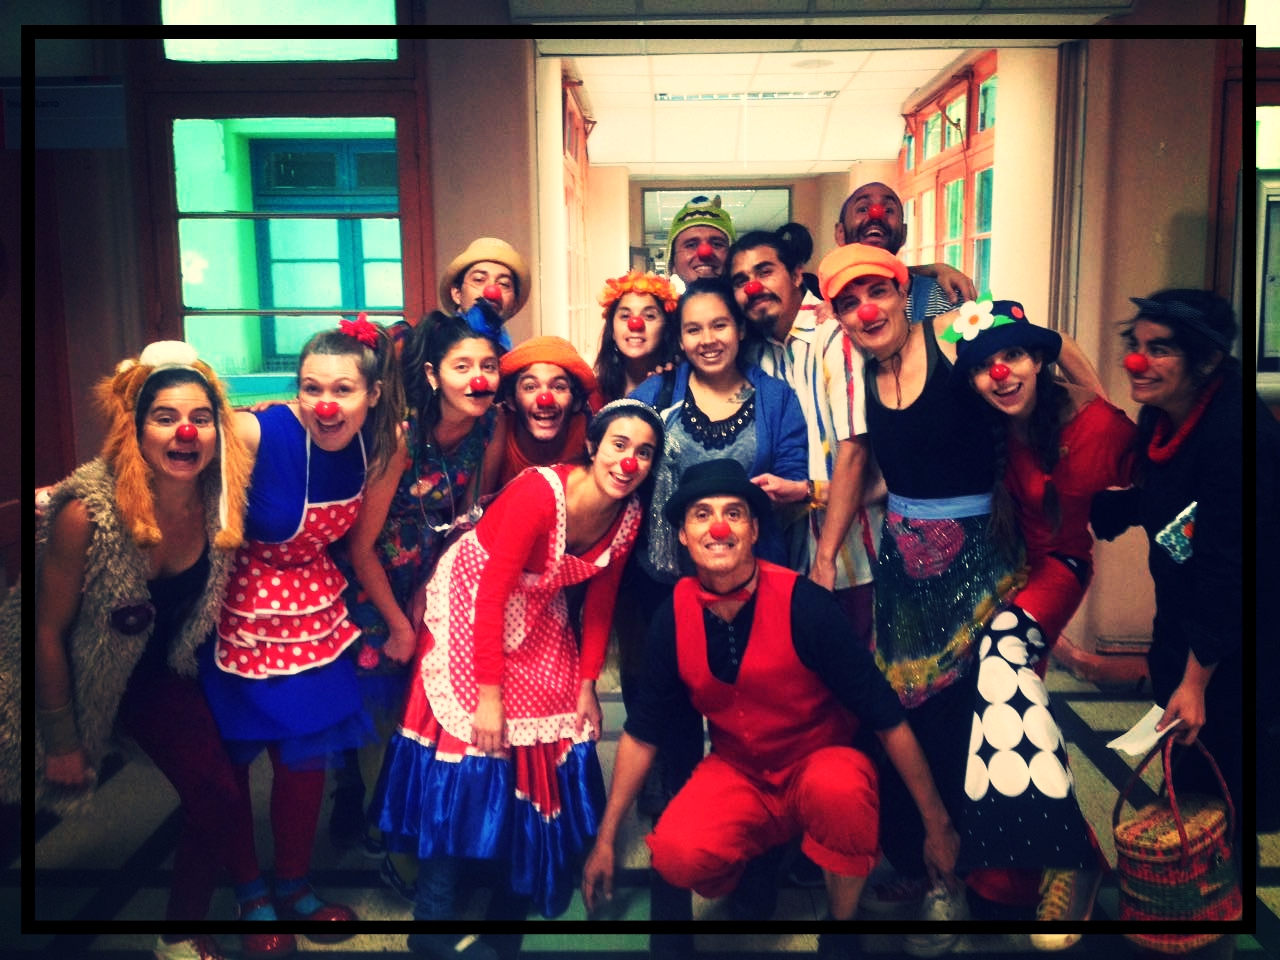 """CLOWNSIENTE workshop + intervention in Roberto del Río kids hospital of Santiago.  The same weekend, Patch Adams was in town. """"Humor is an antidote to all ills."""""""